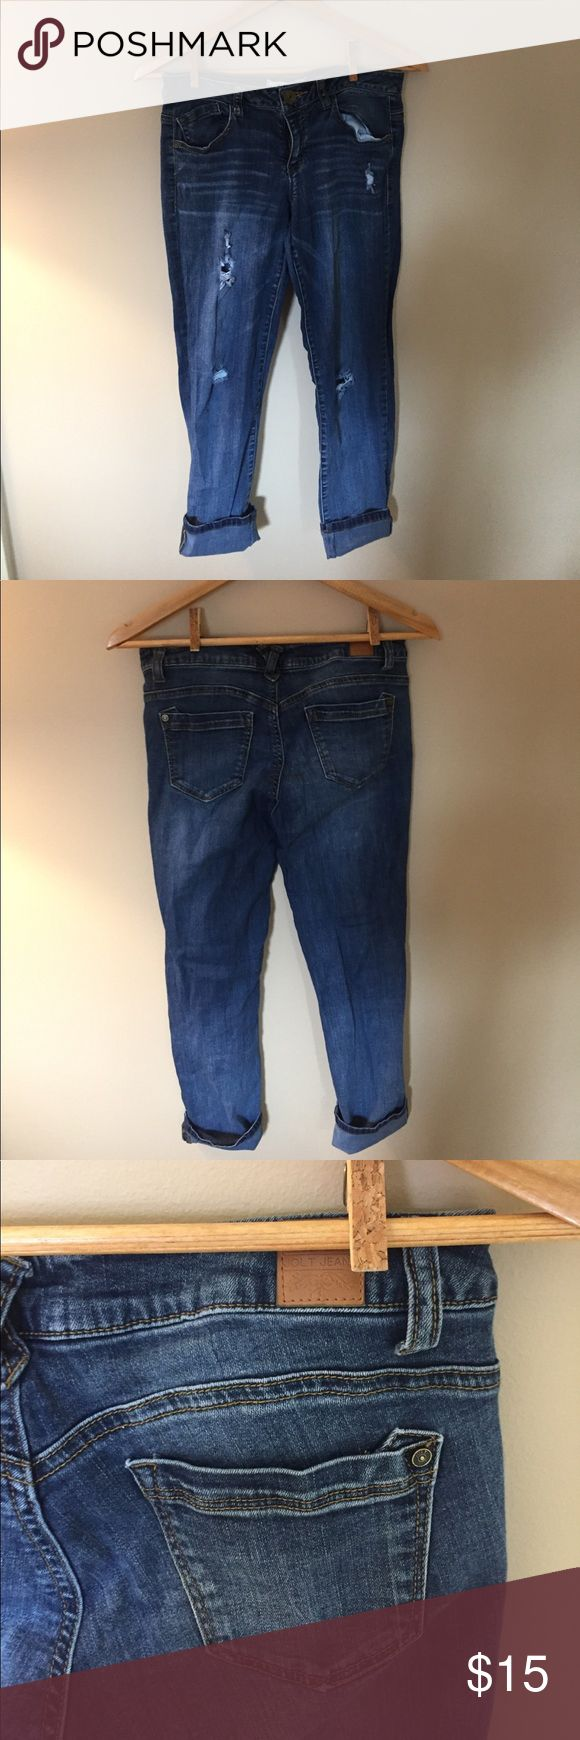 Jolt jean Capri 5 Perfect pair of capris for spring. Very lightly worn. Offers welcome! Jolt Jeans Ankle & Cropped